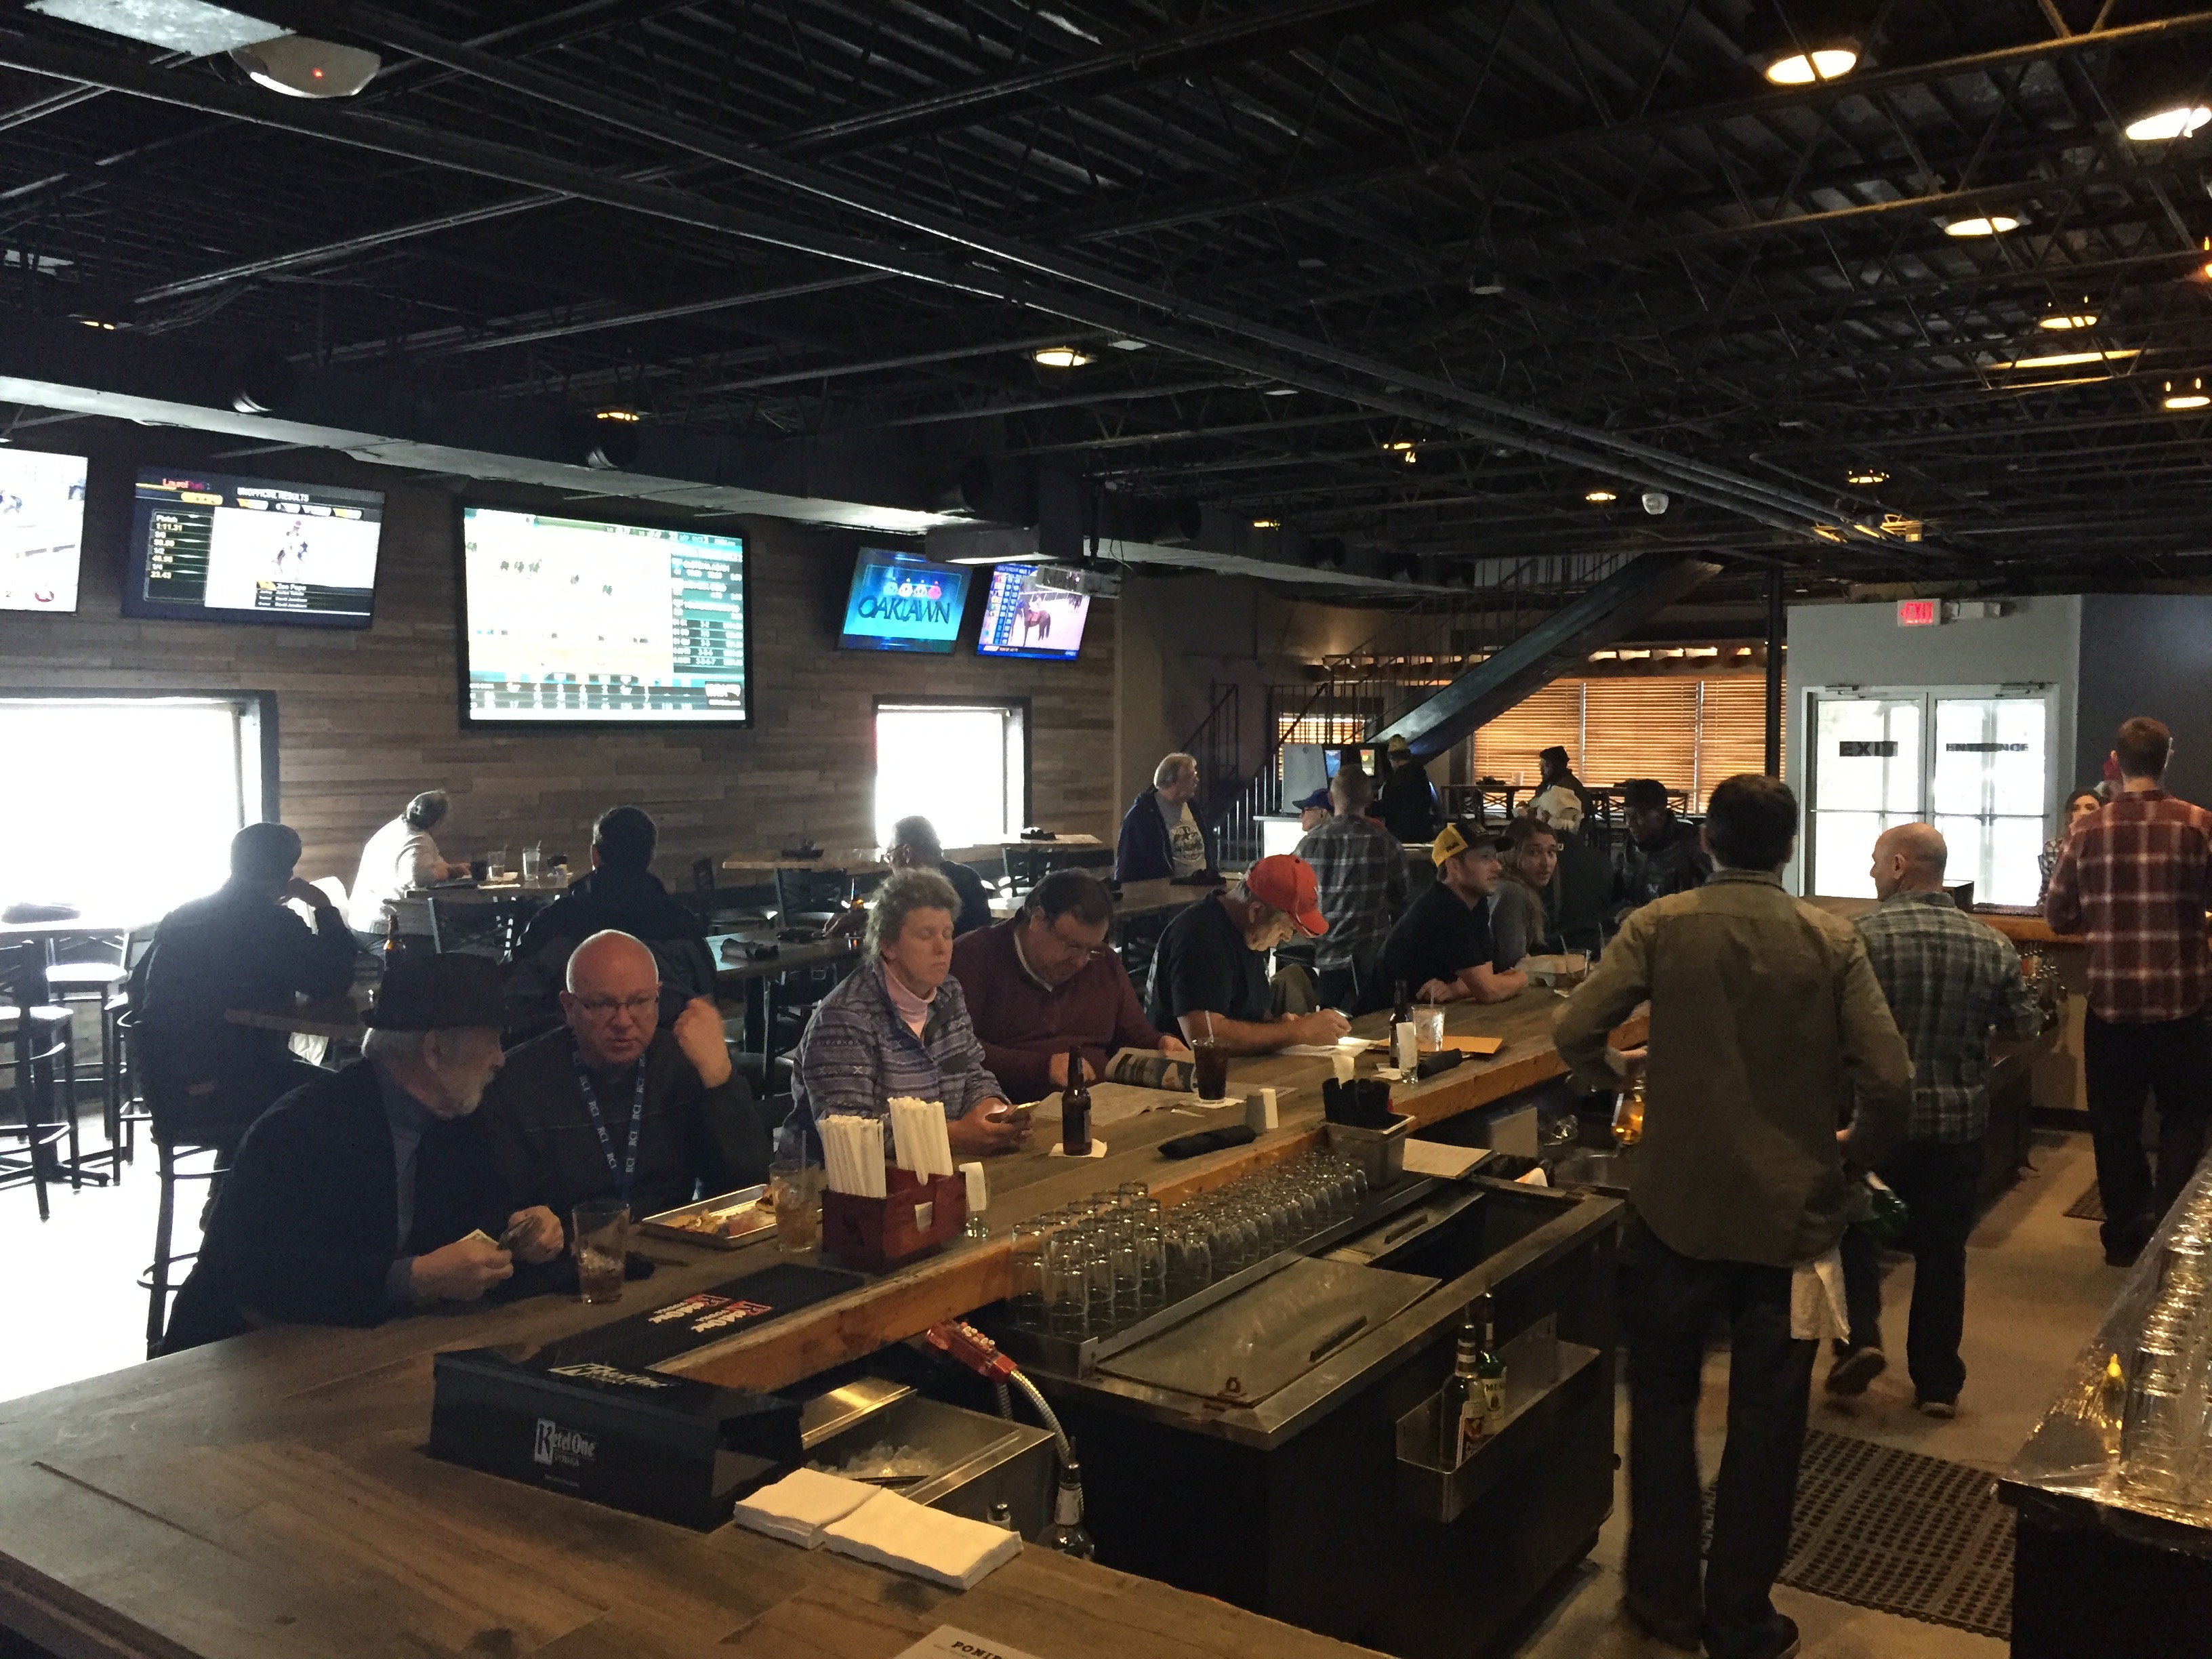 The OTB at Ponies & Pints handled over $668,000 in the month of February.